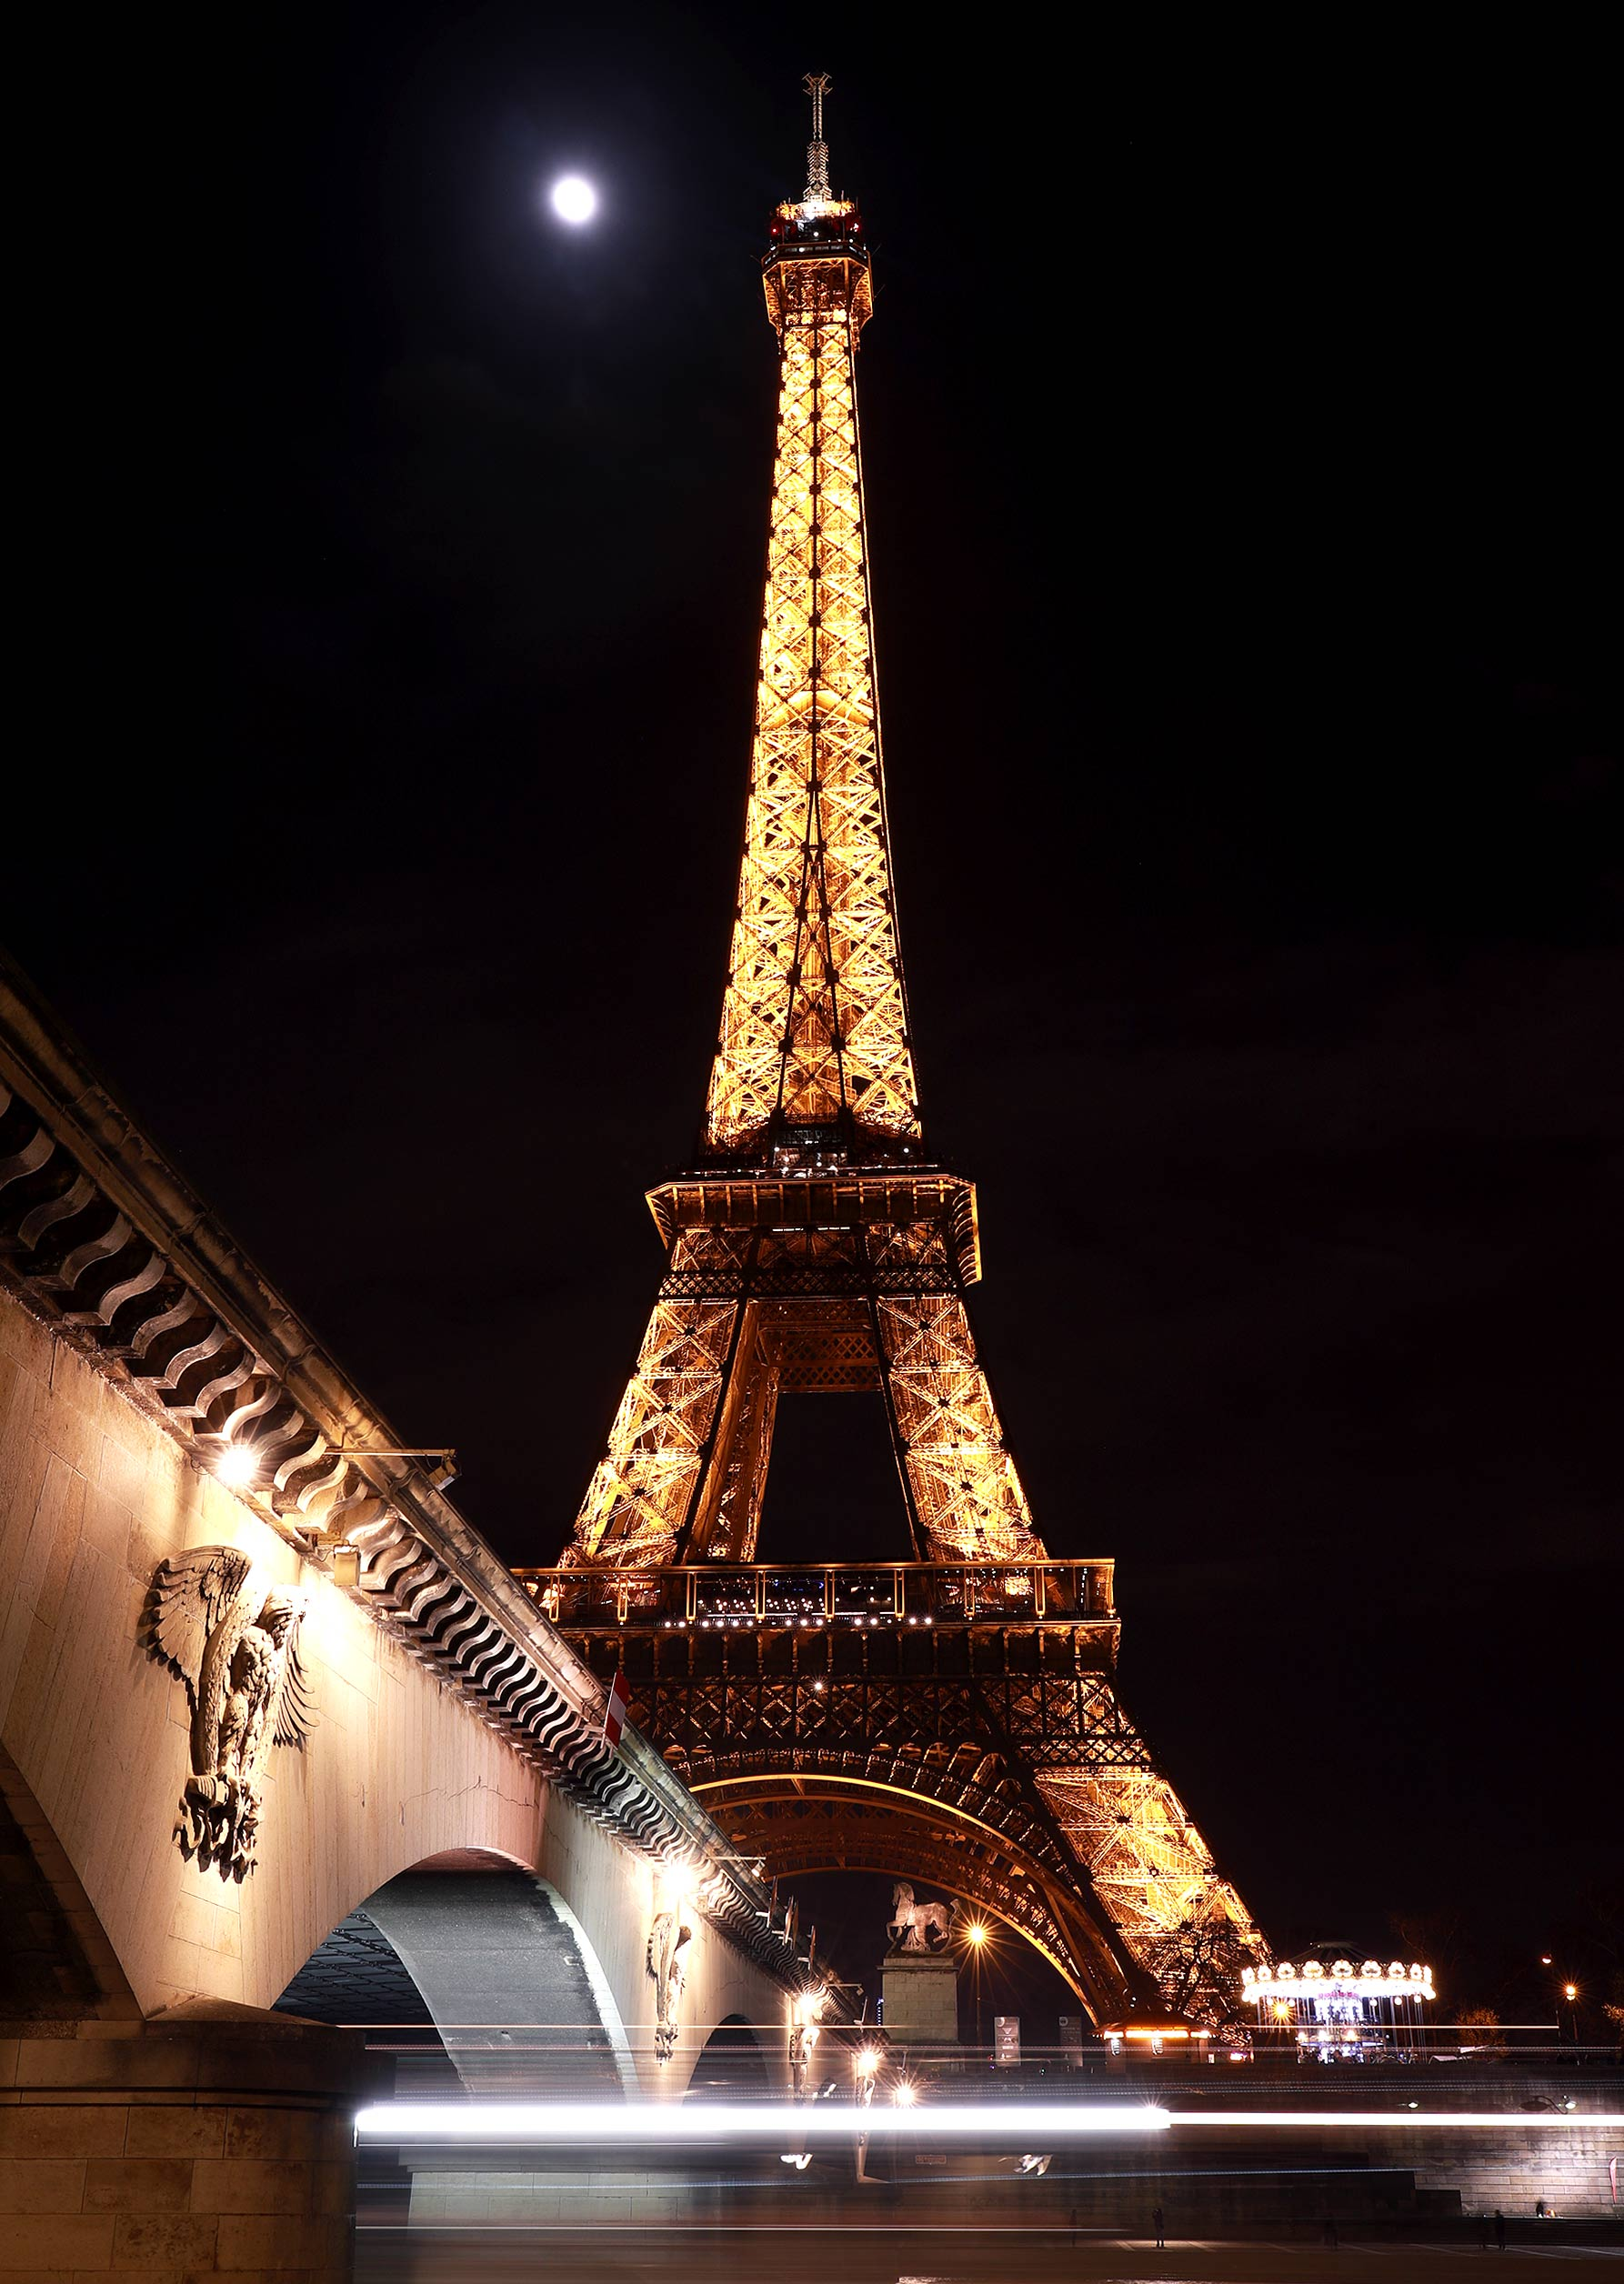 Long exposure night time photograph of the Eiffel Tower in Paris